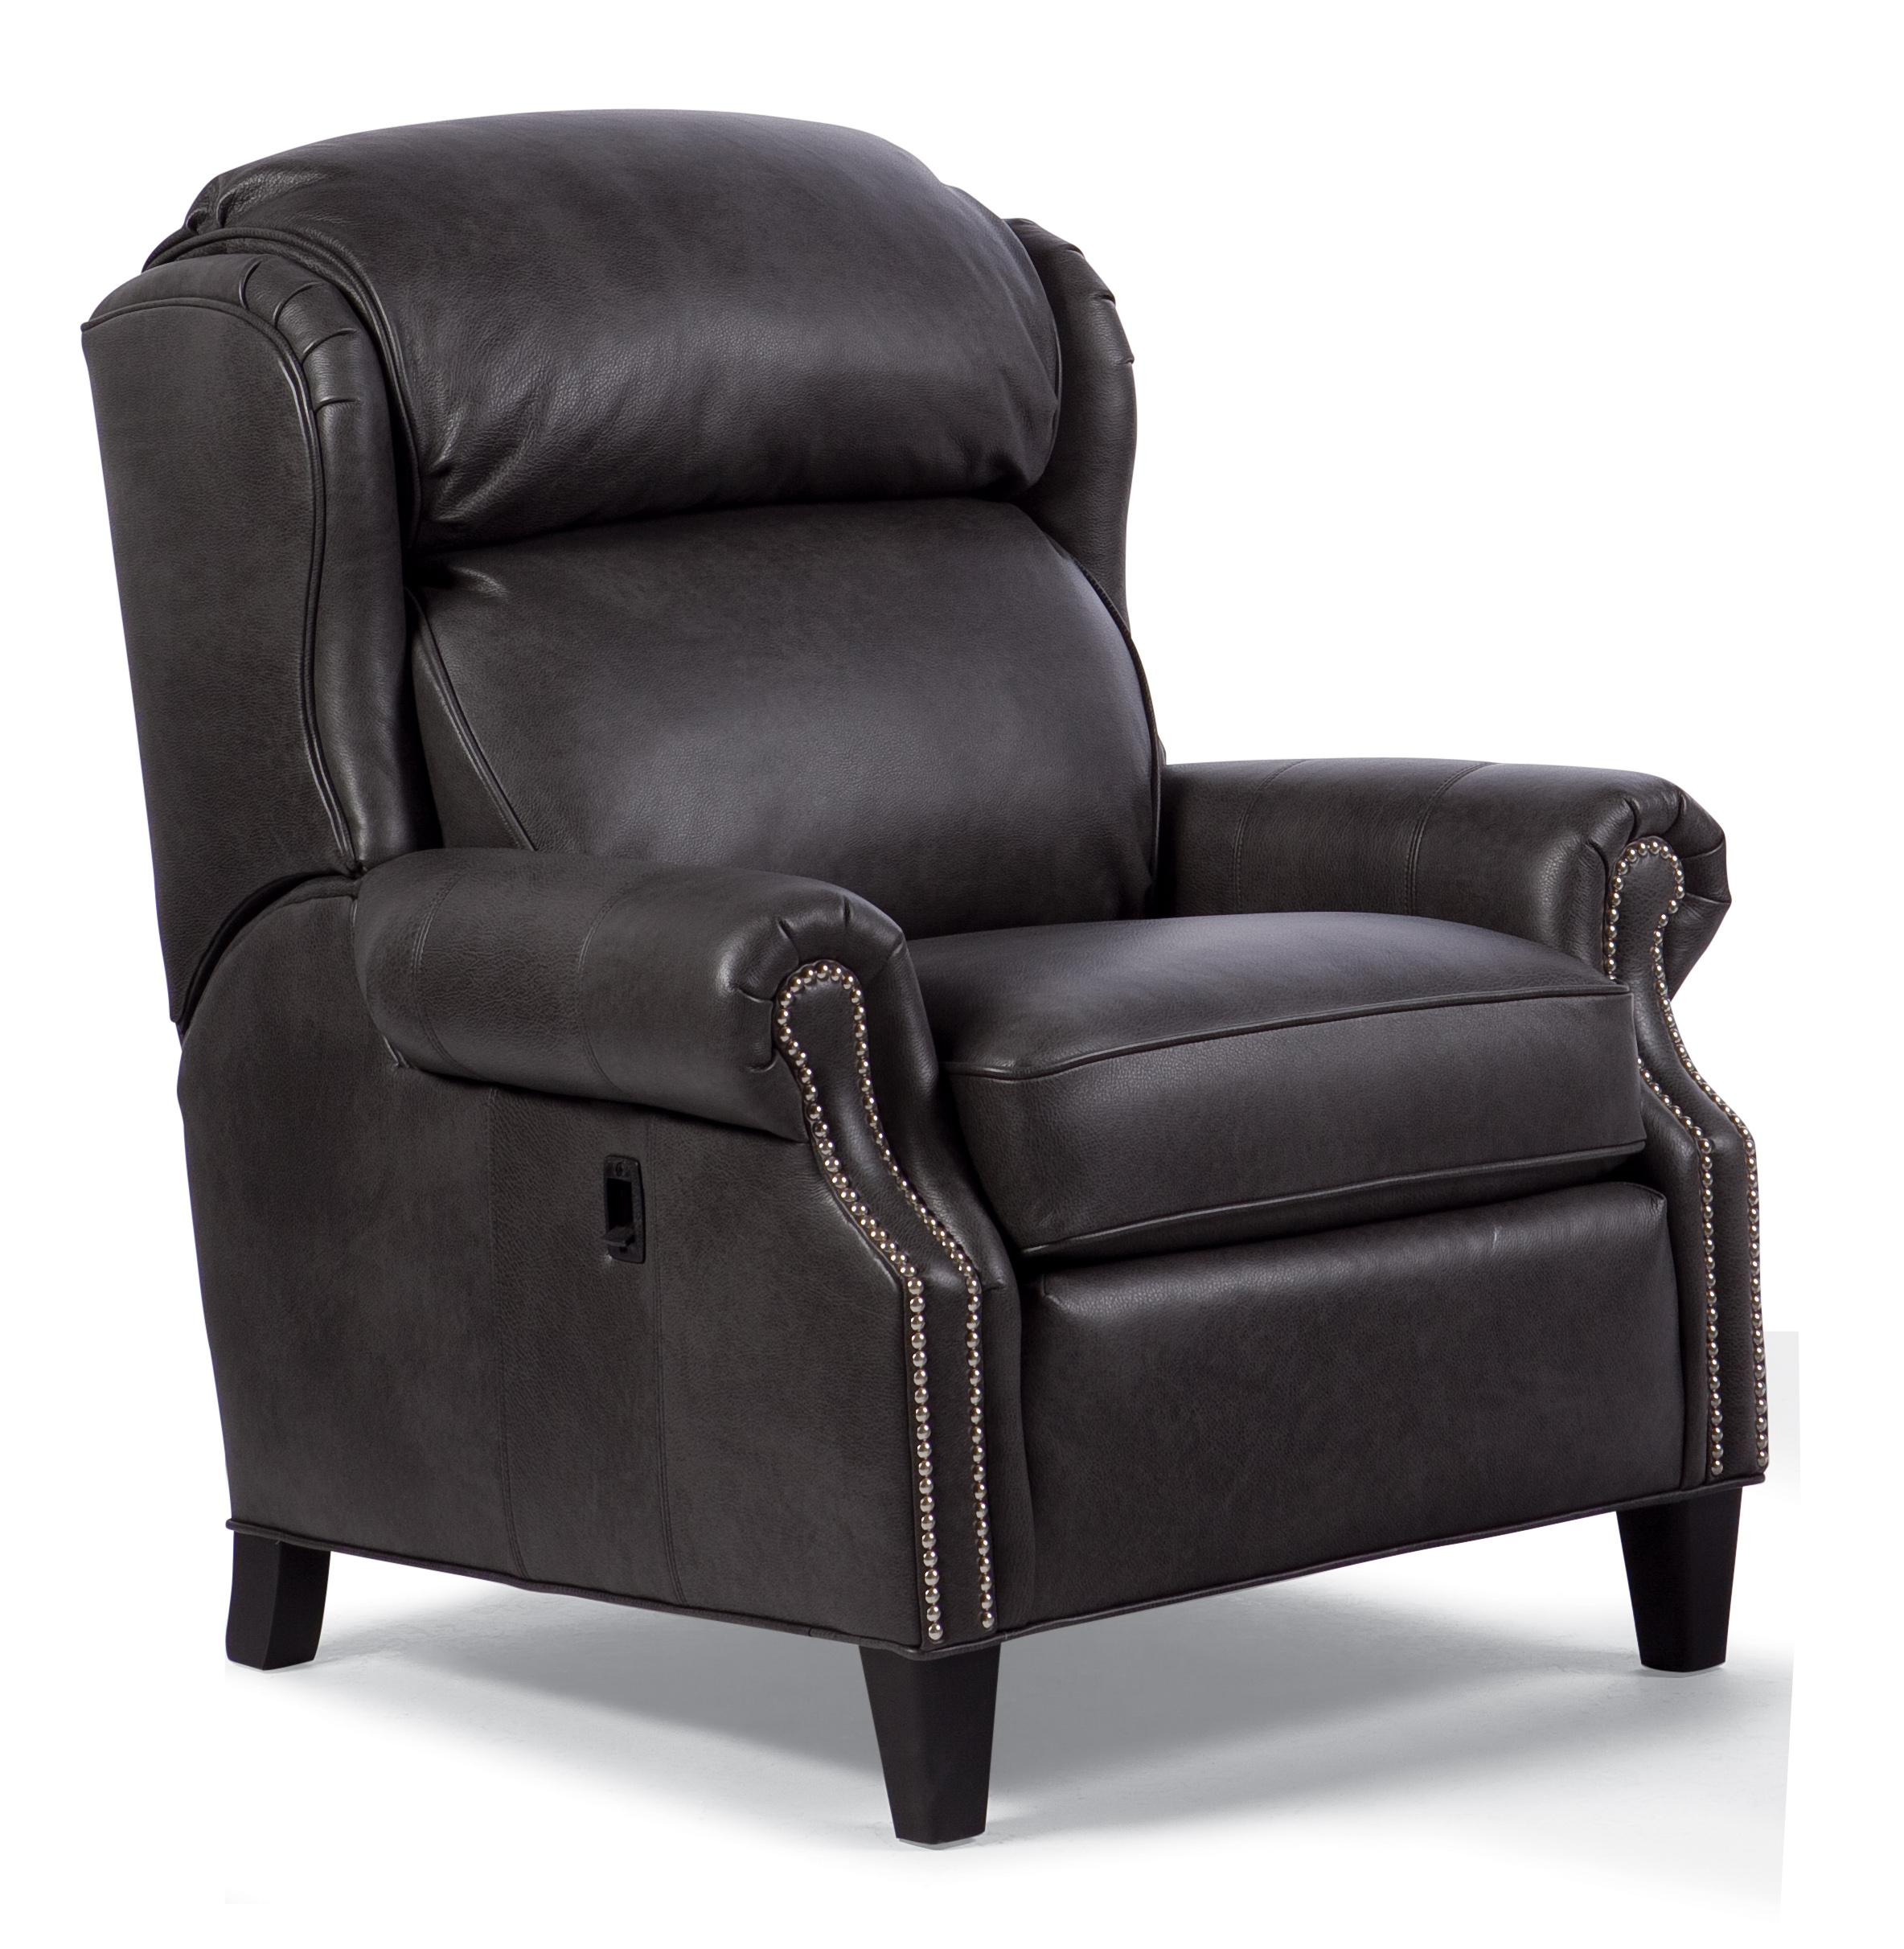 Traditional Motorized Reclining Chair with Nailhead Trim  sc 1 st  Wolf Furniture : motorized recliner chairs - islam-shia.org